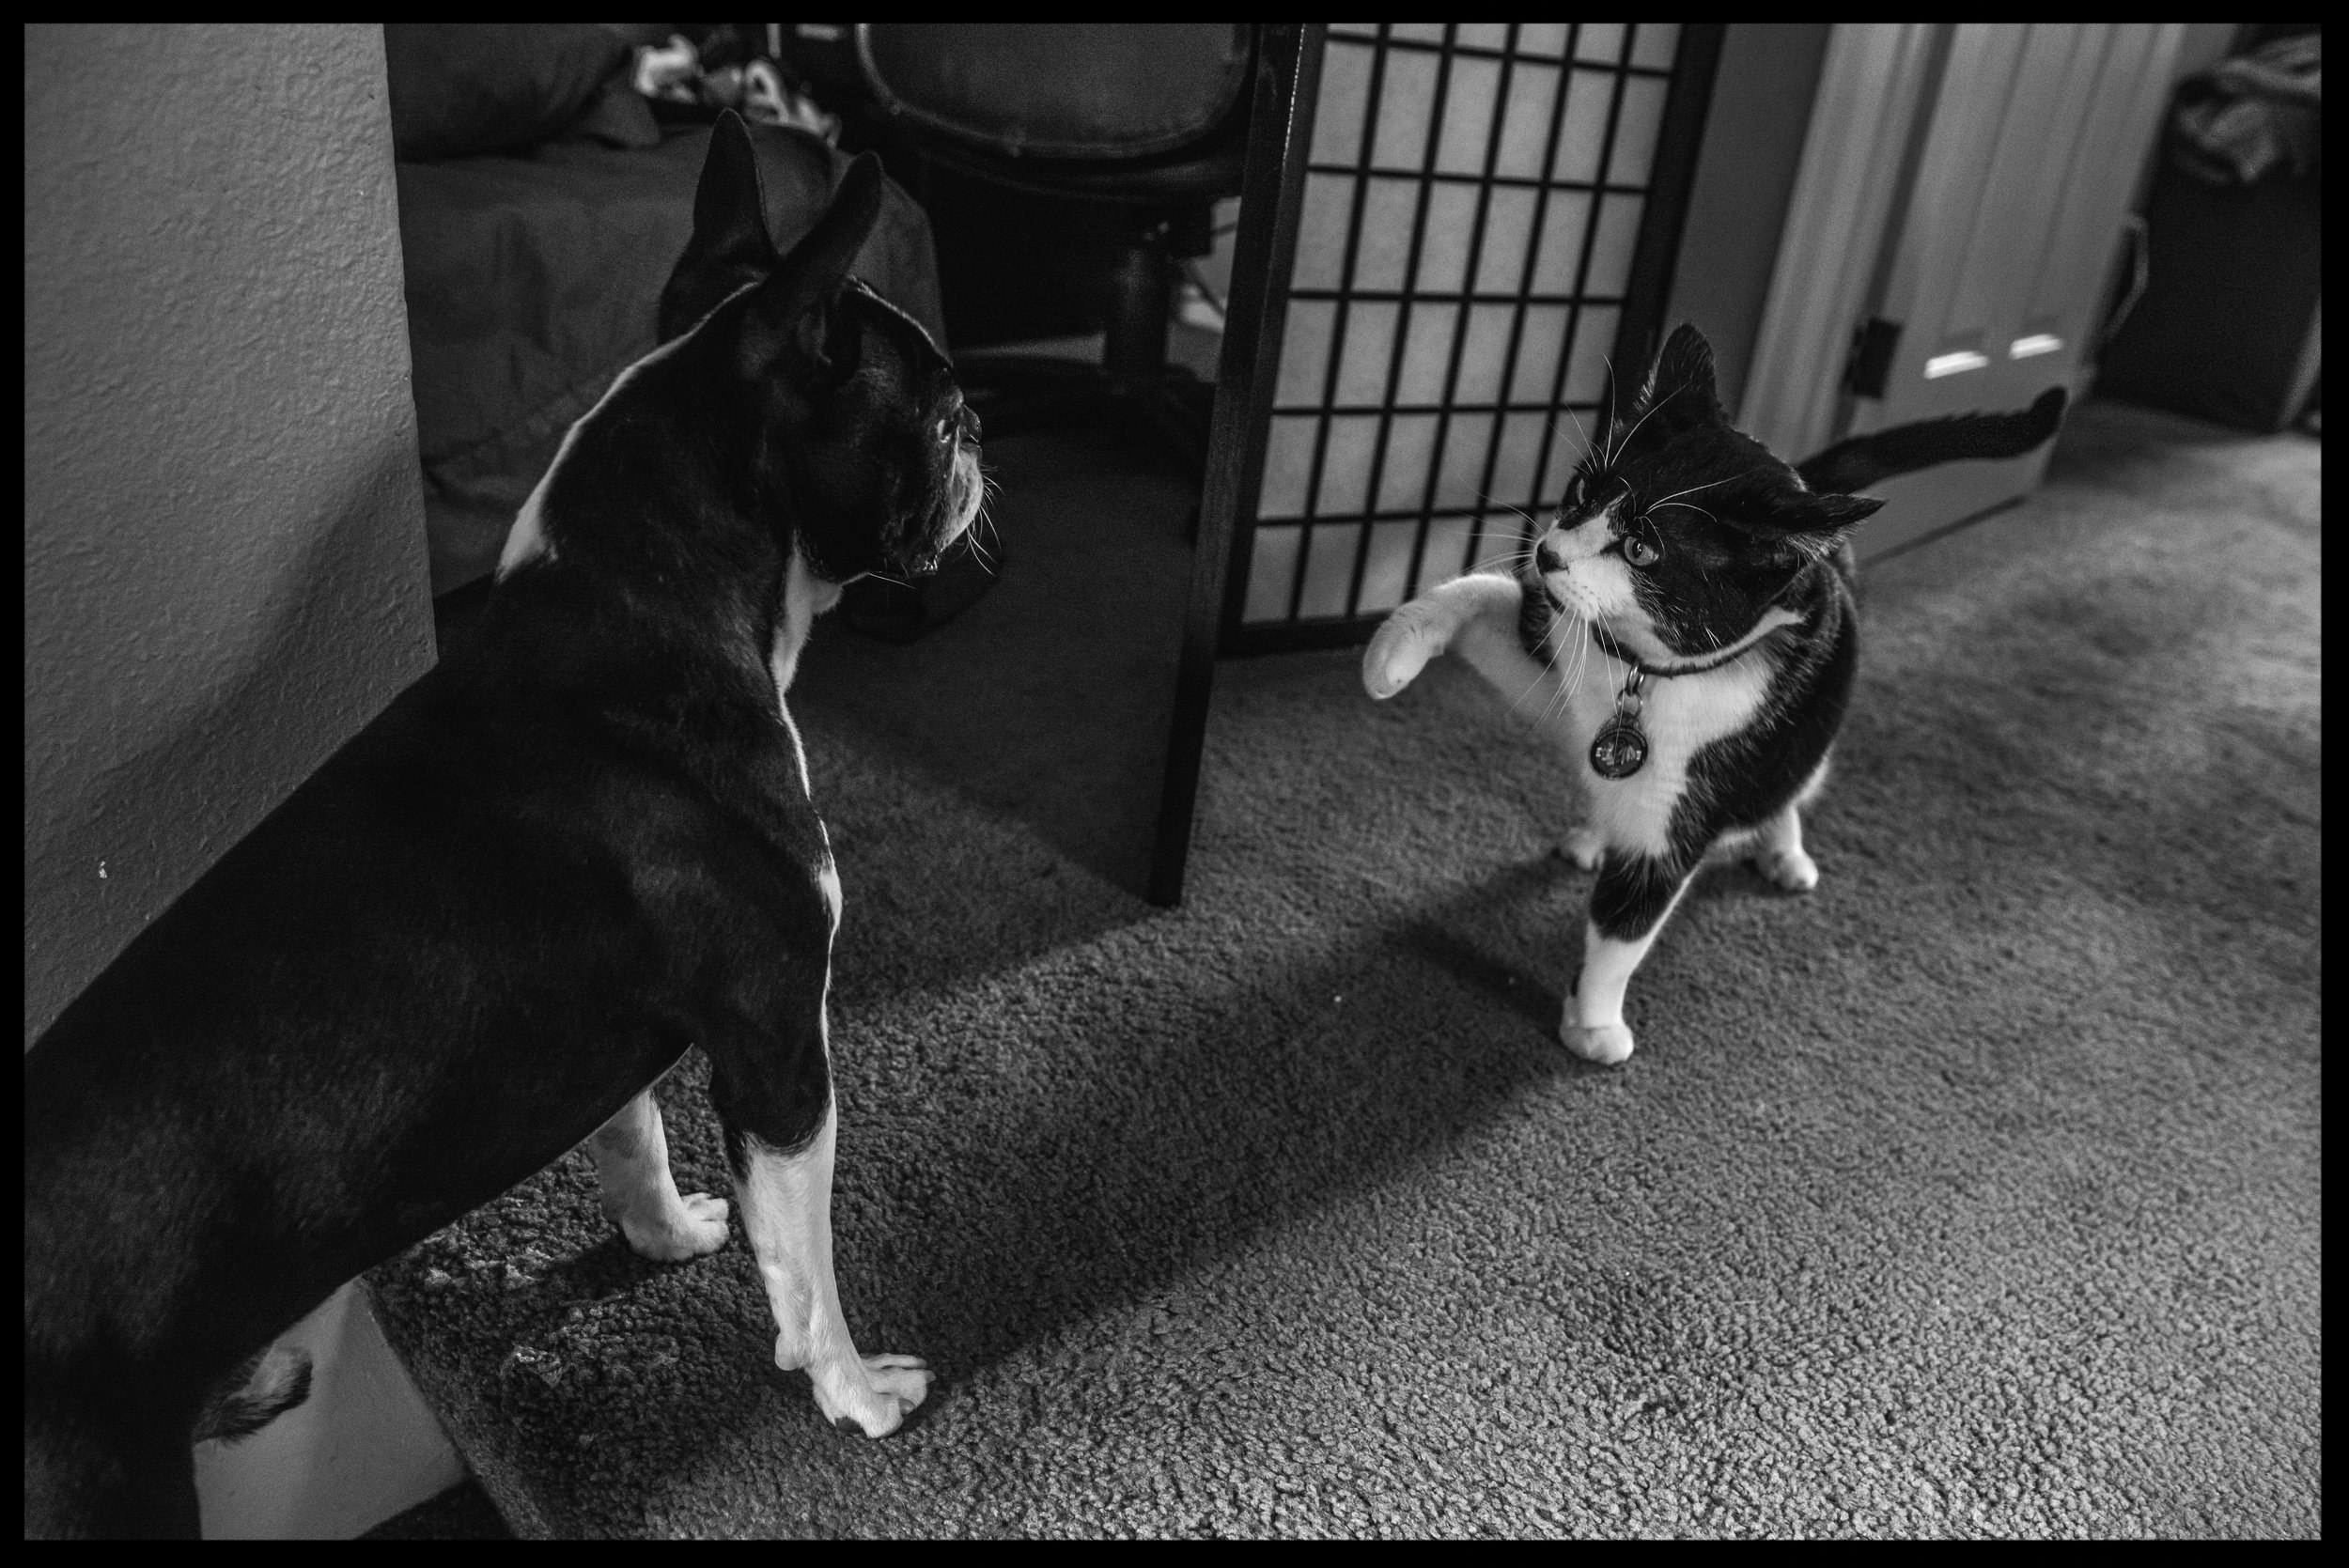 Cat lifting its paw to swat at small dog, black and white,Aurora, Colorado